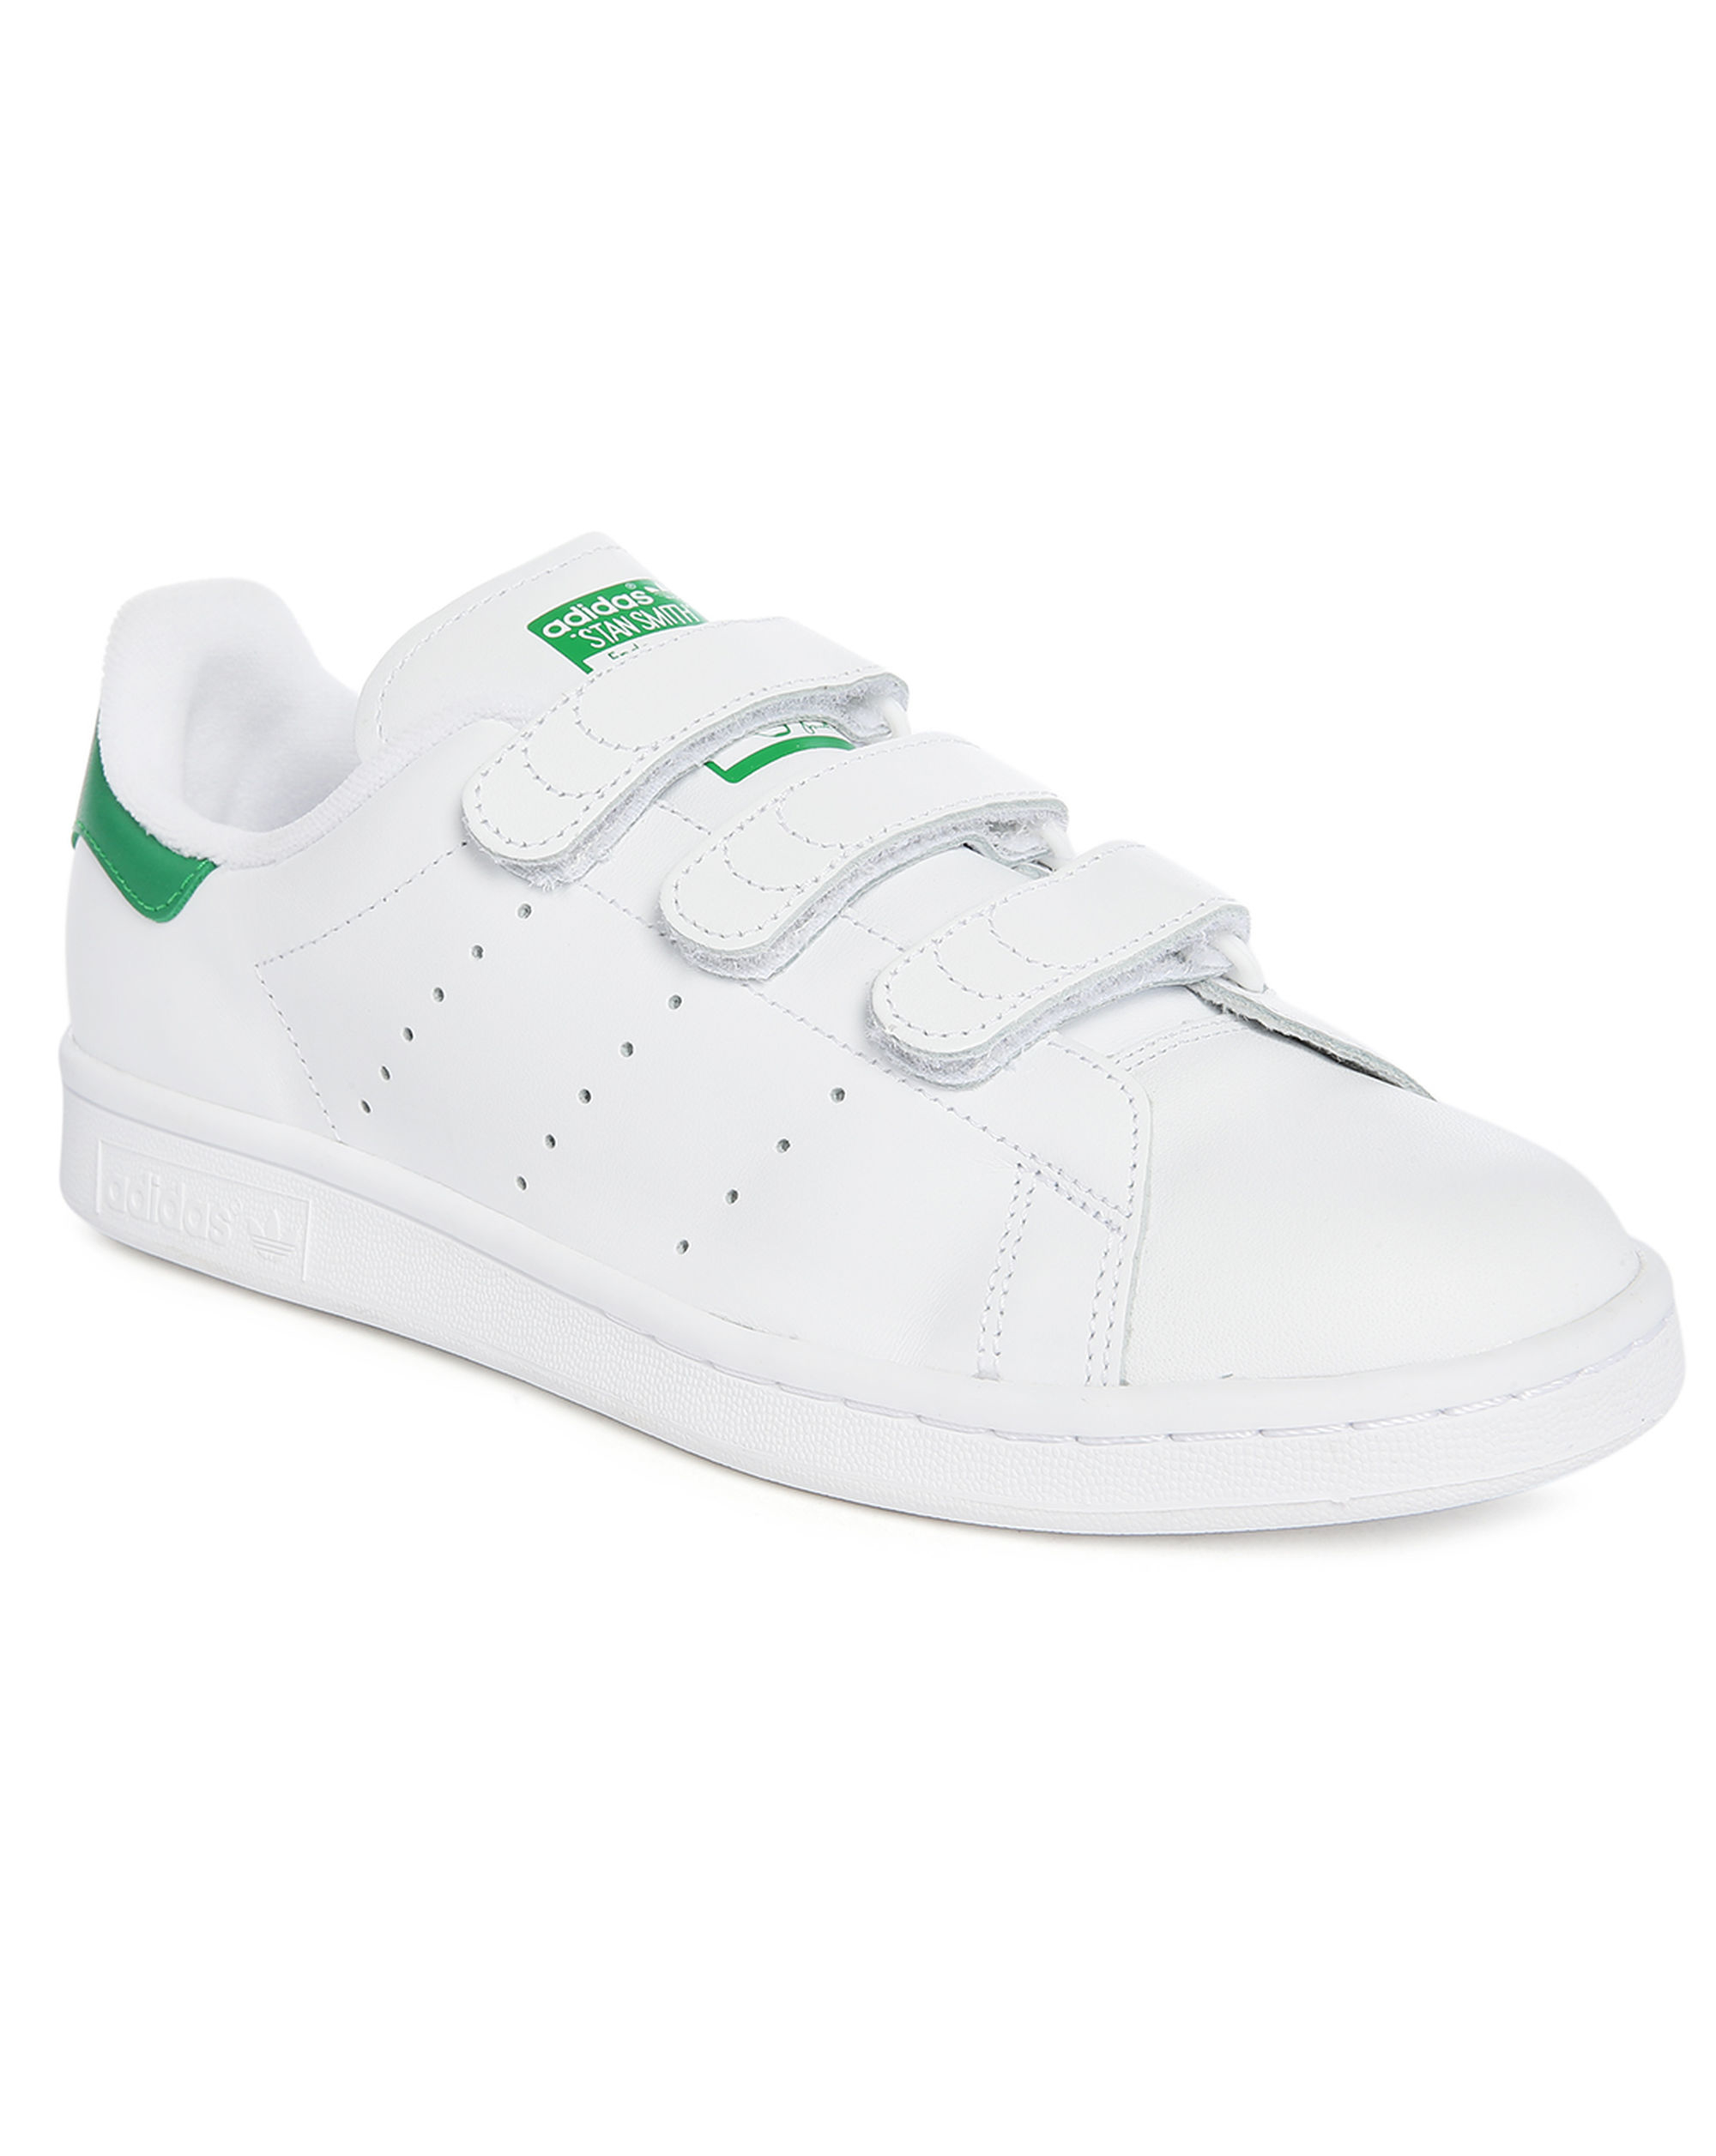 adidas originals white green stan smith leather velcro sneakers in green for men lyst. Black Bedroom Furniture Sets. Home Design Ideas